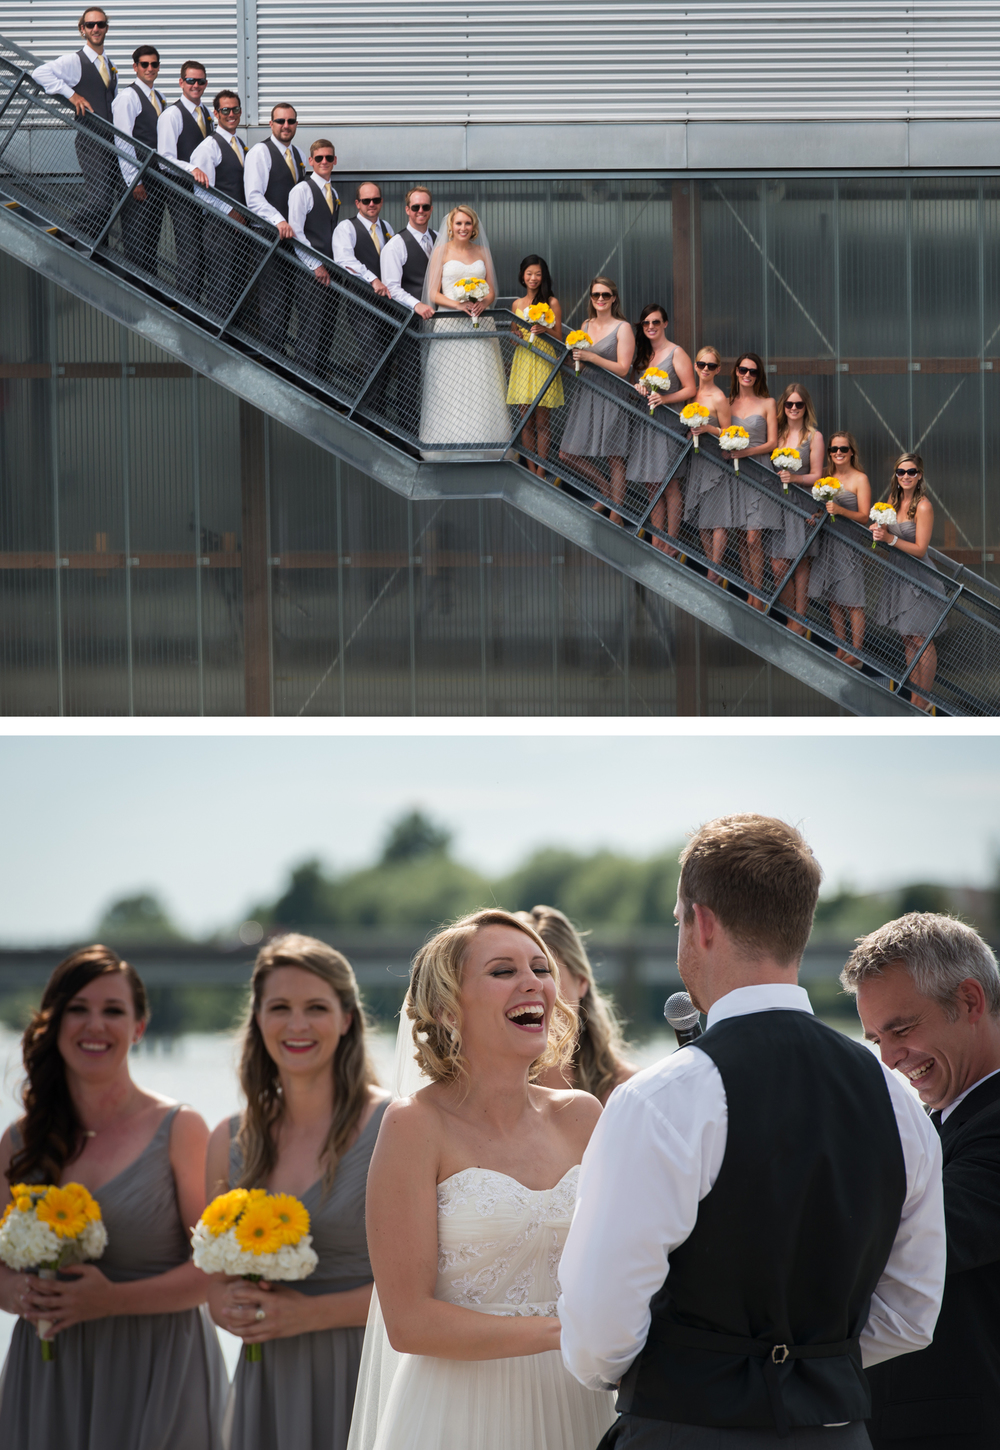 Shots from the first wedding I photographed this past summer. I lucked out – every single person in the wedding party was model-beautiful, easy going and a lot of fun to work with.